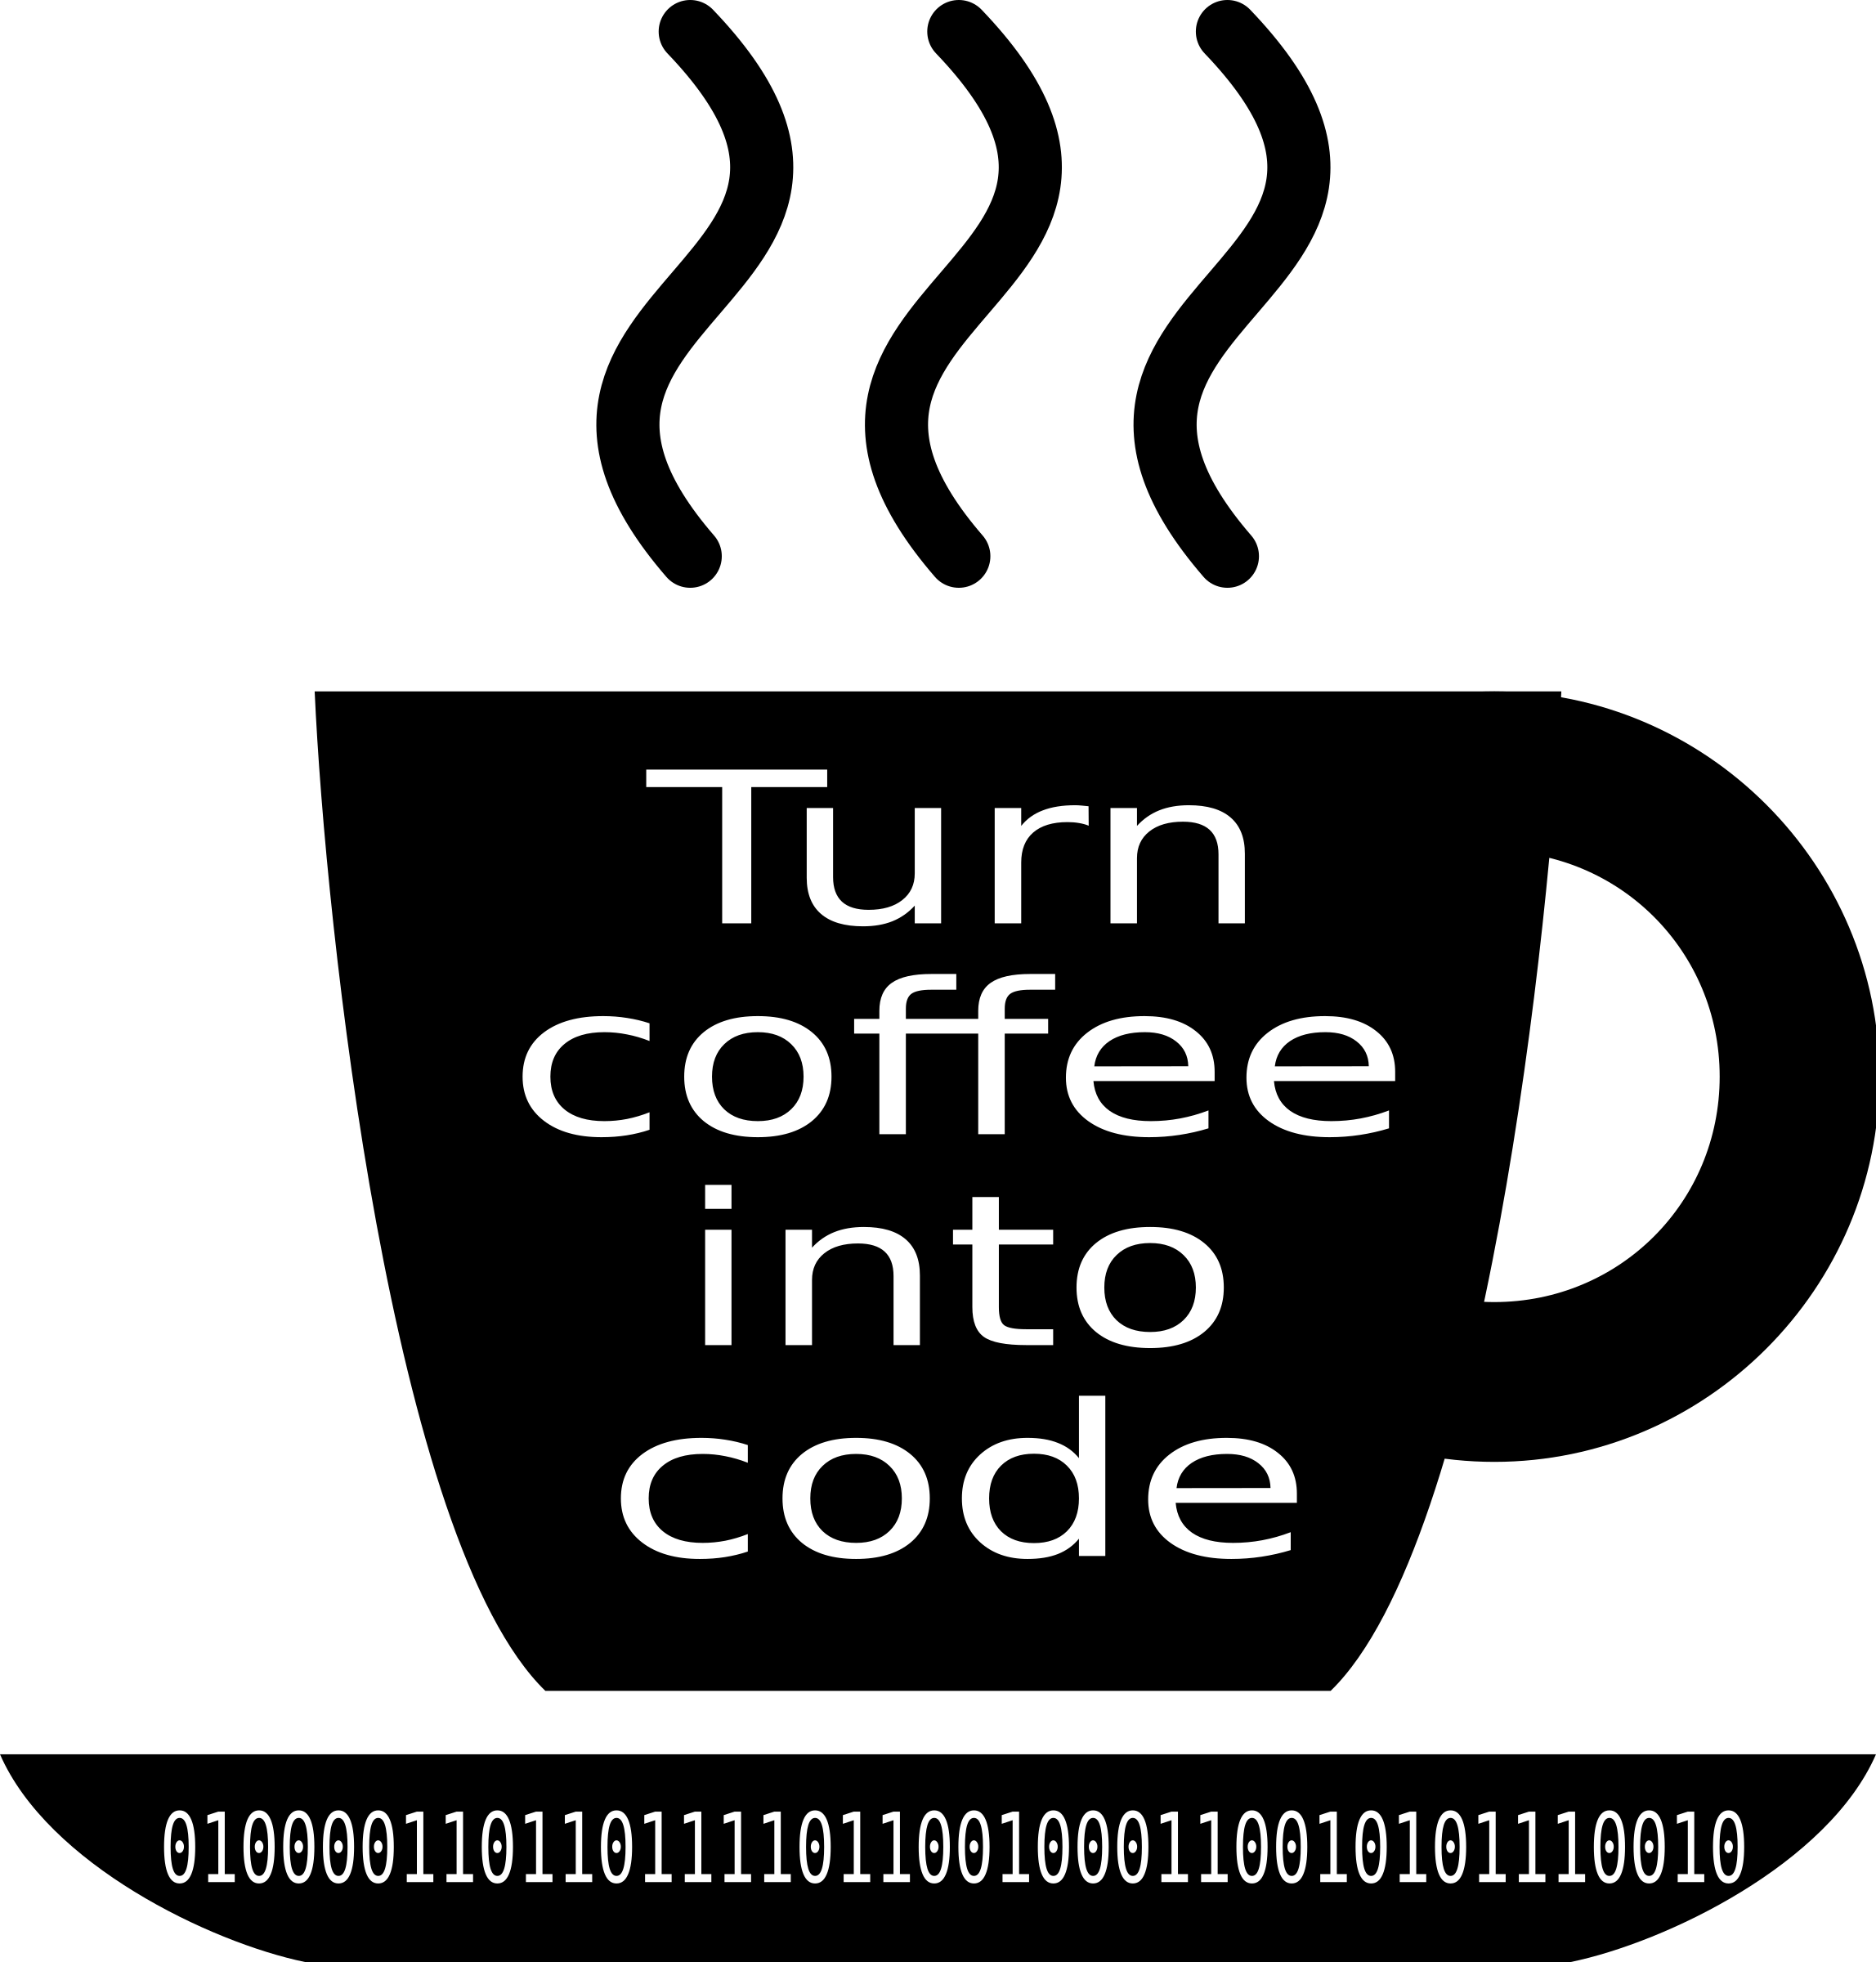 Coffee cup vector png. Clipart turn into code